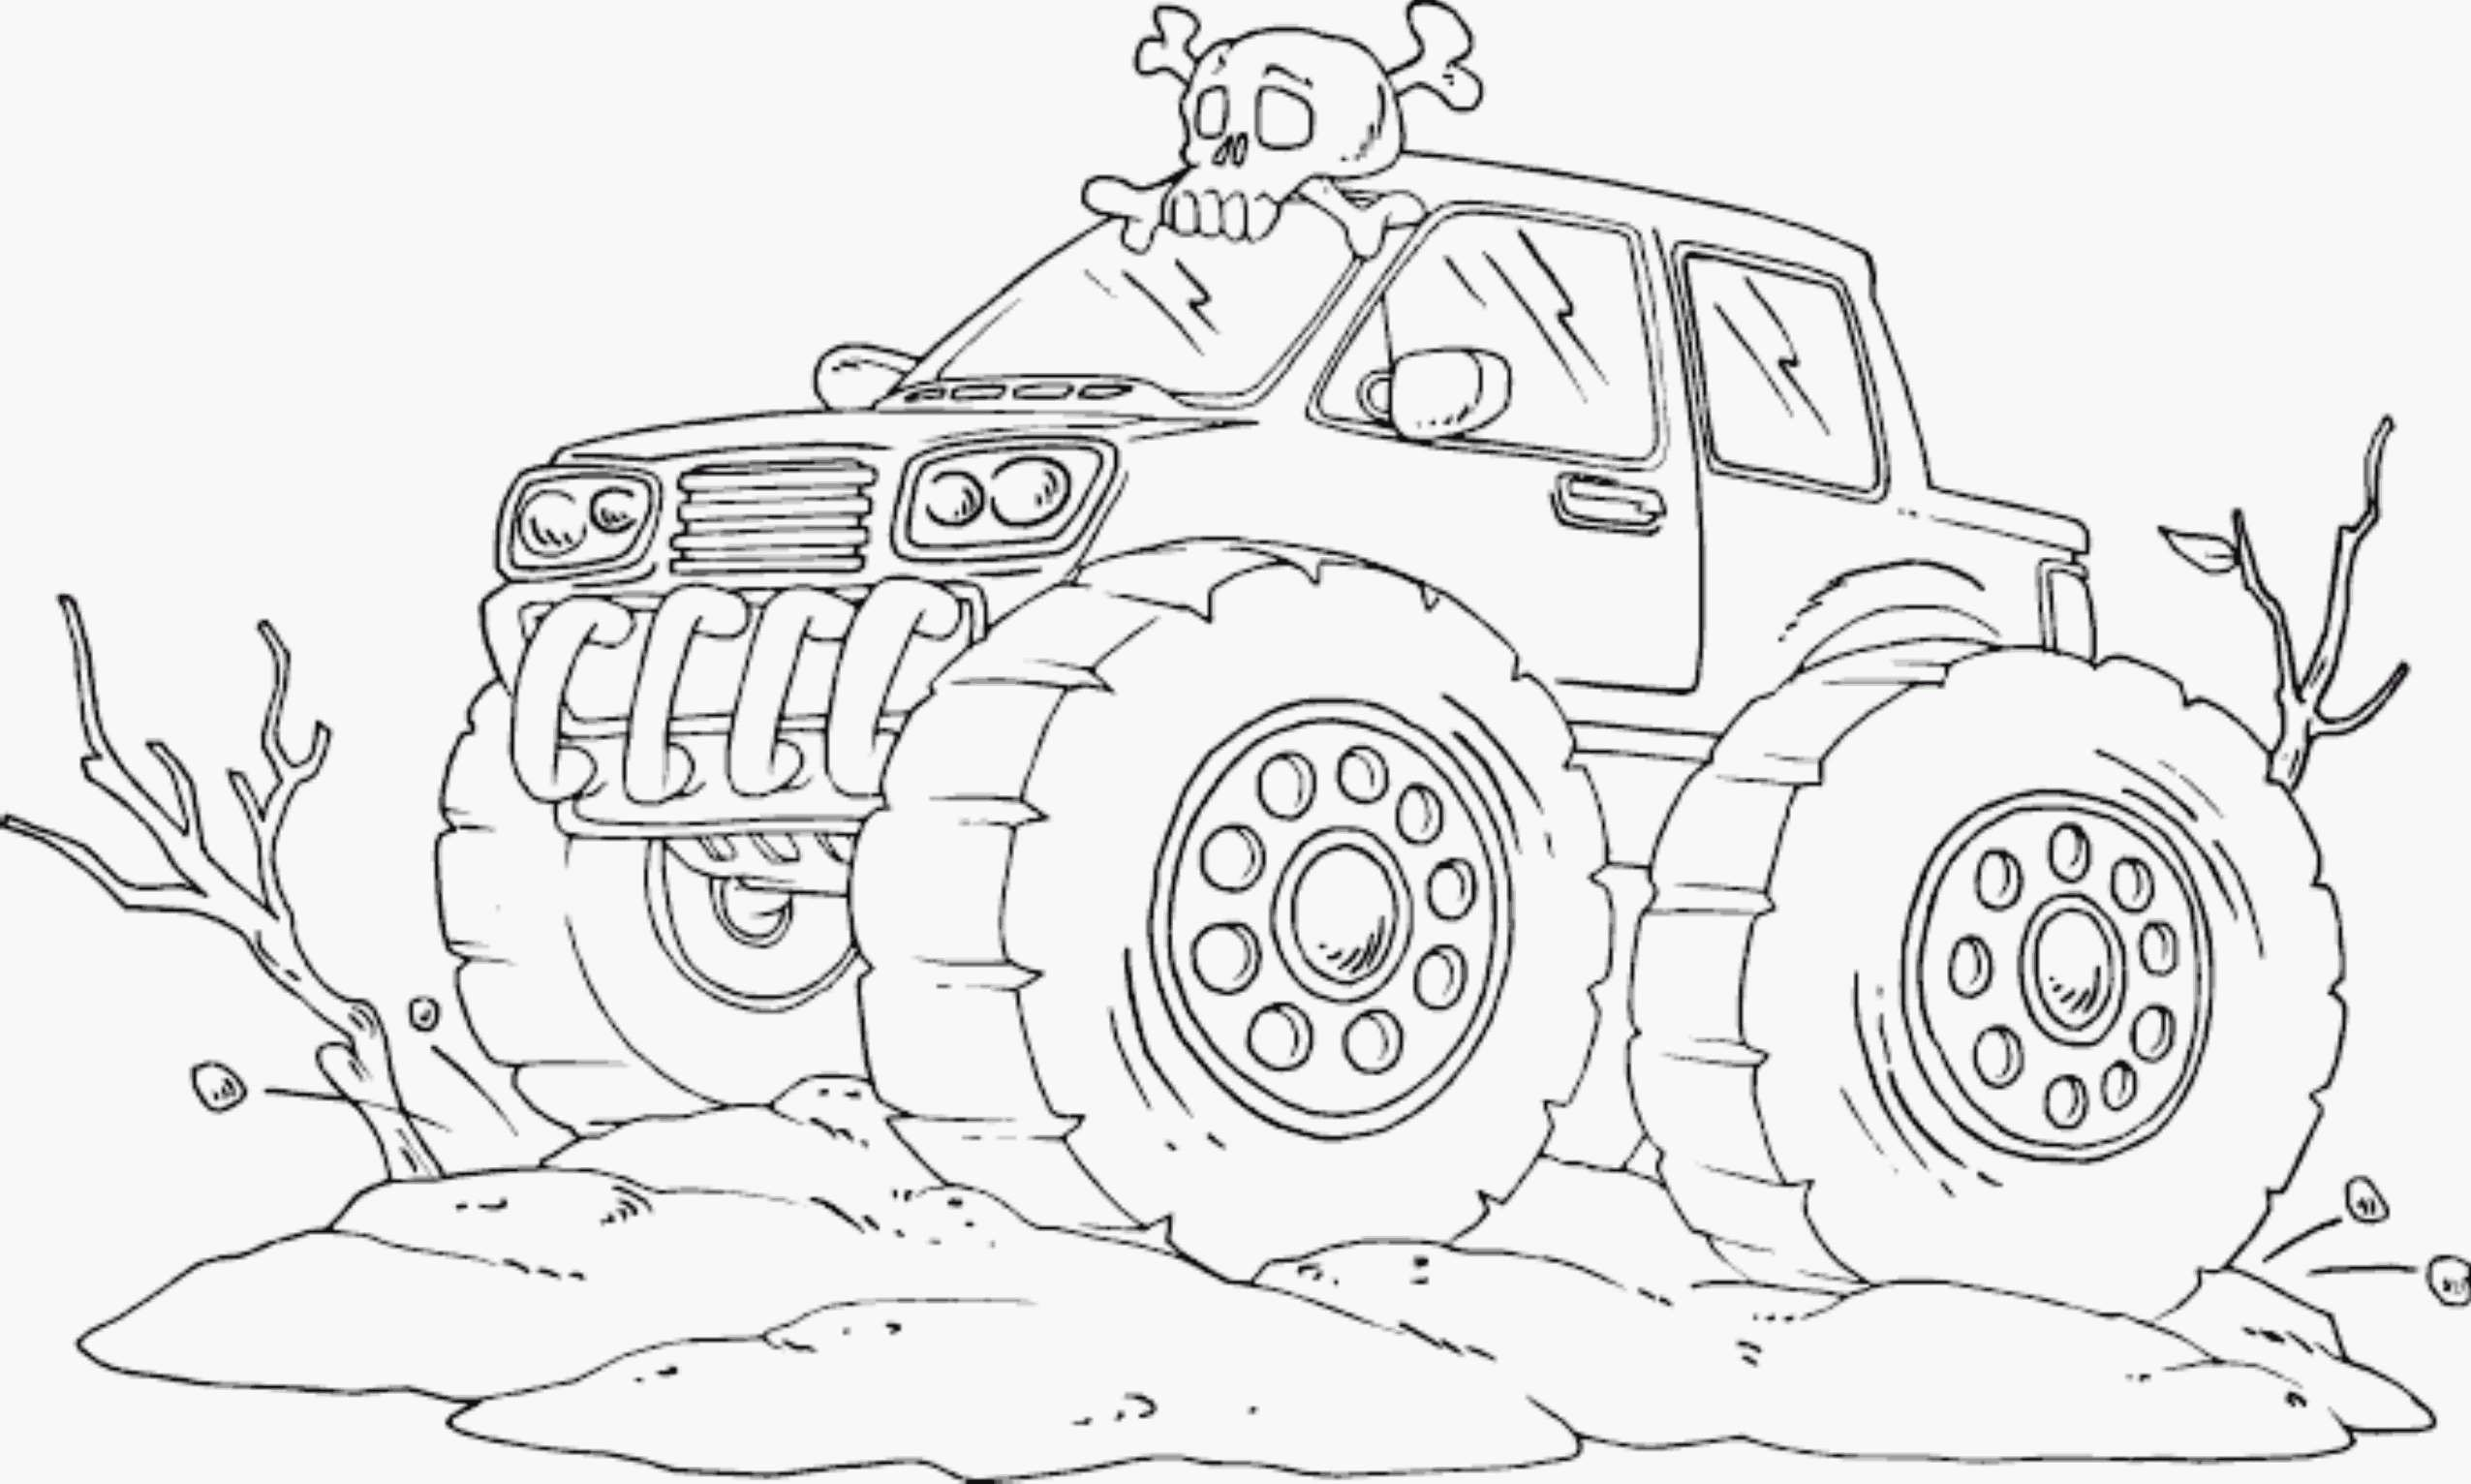 Blue Thunder Monster Truck Coloring Pages In 2020 Monster Truck Coloring Pages Truck Coloring Pages Cars Coloring Pages